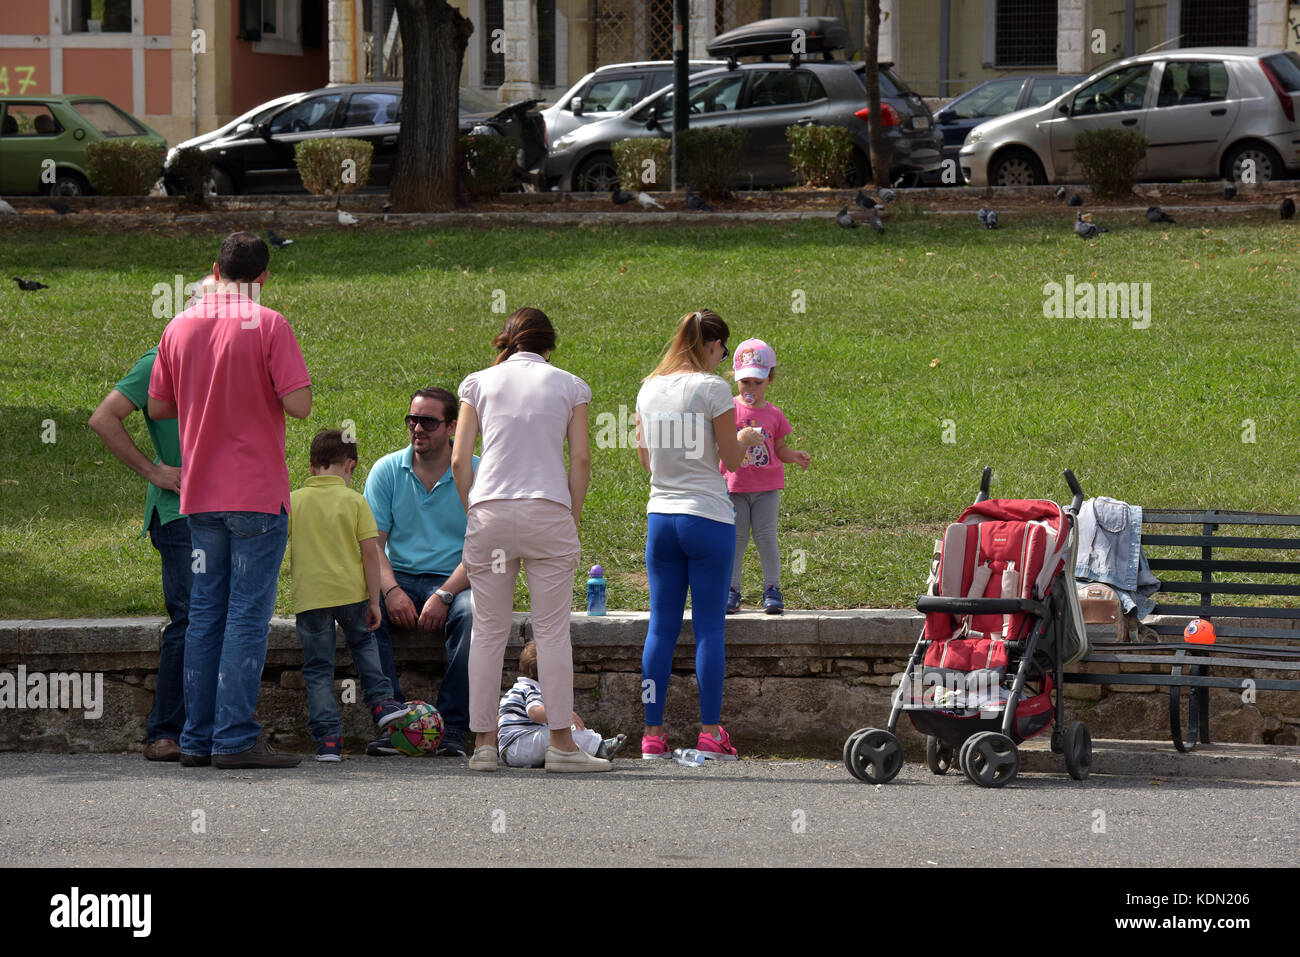 a large and extended family meeting in the park for a families gathering at the weekend in Kerkira, Greece on corfu - Stock Image